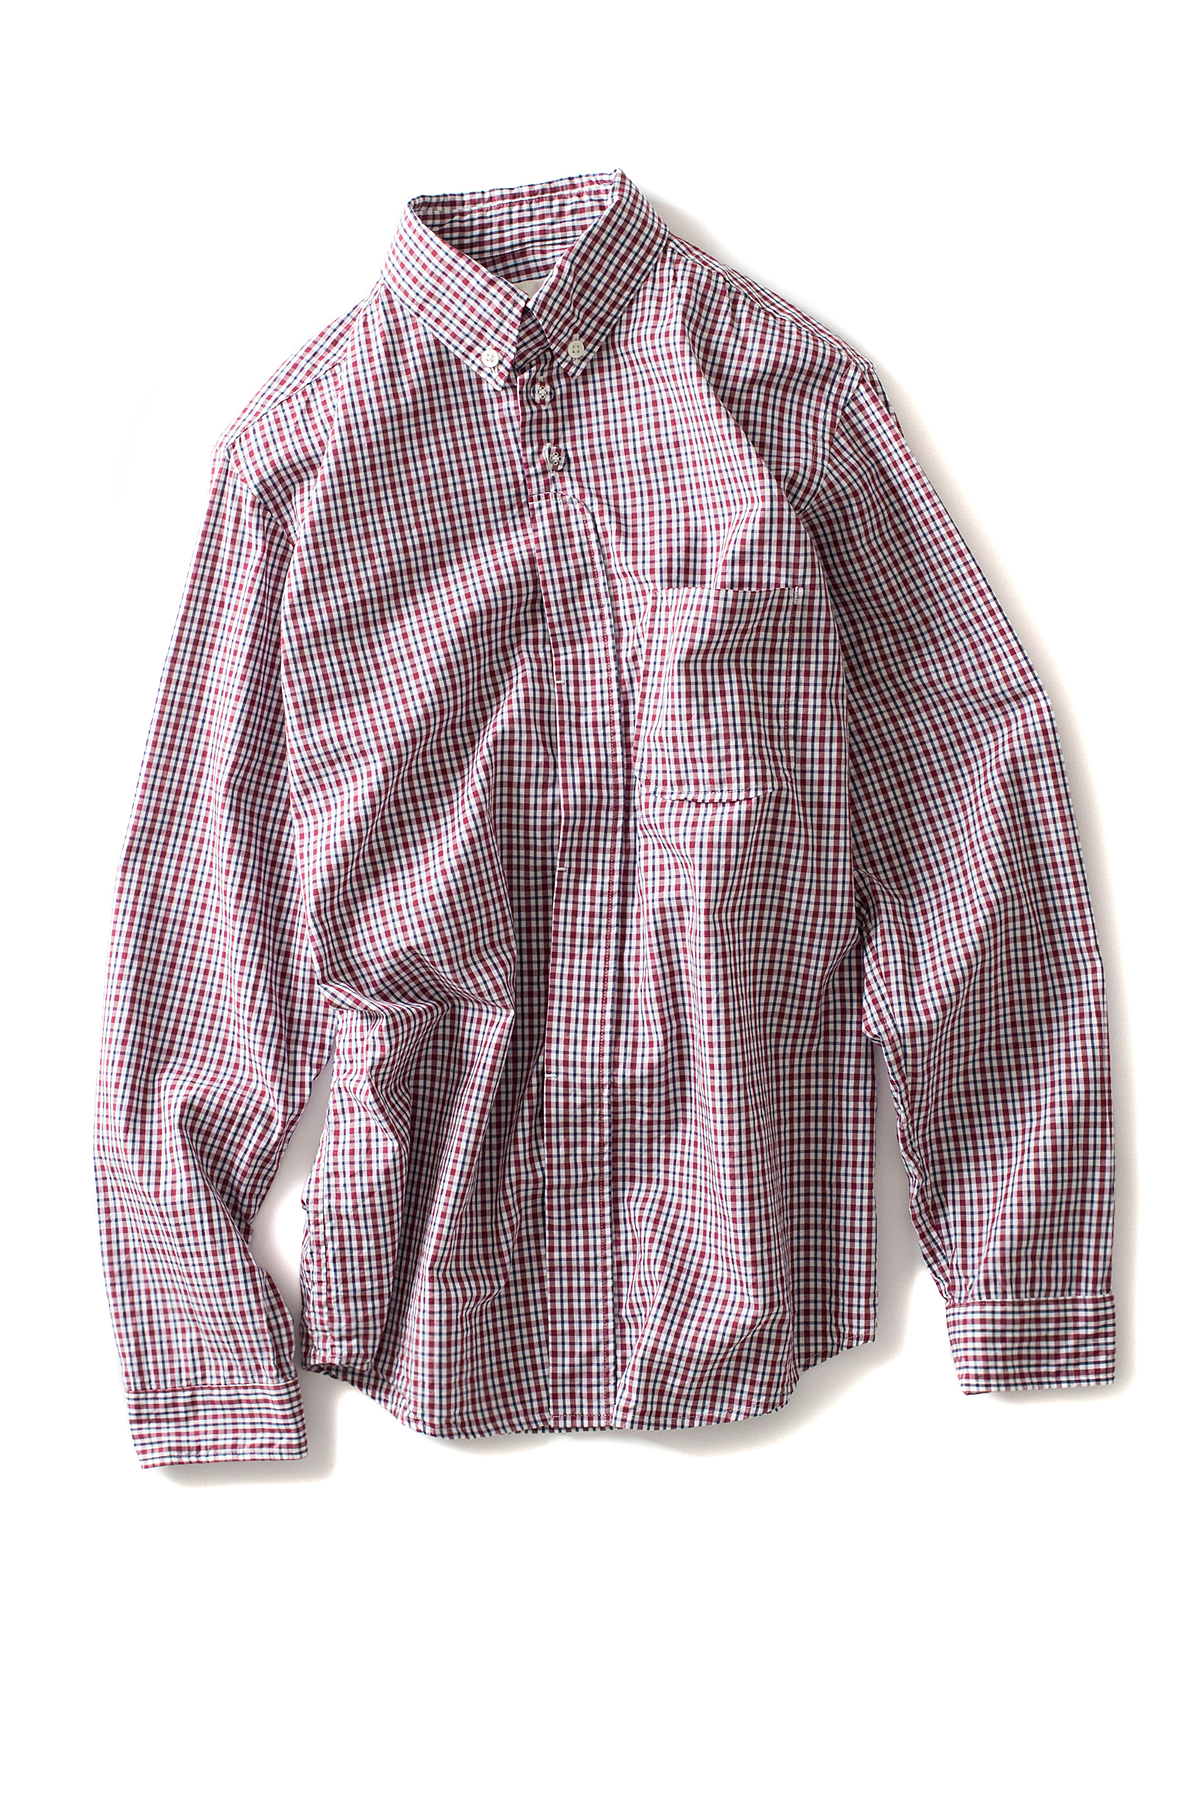 nisica : B.D Check Shirt (Burgundy)